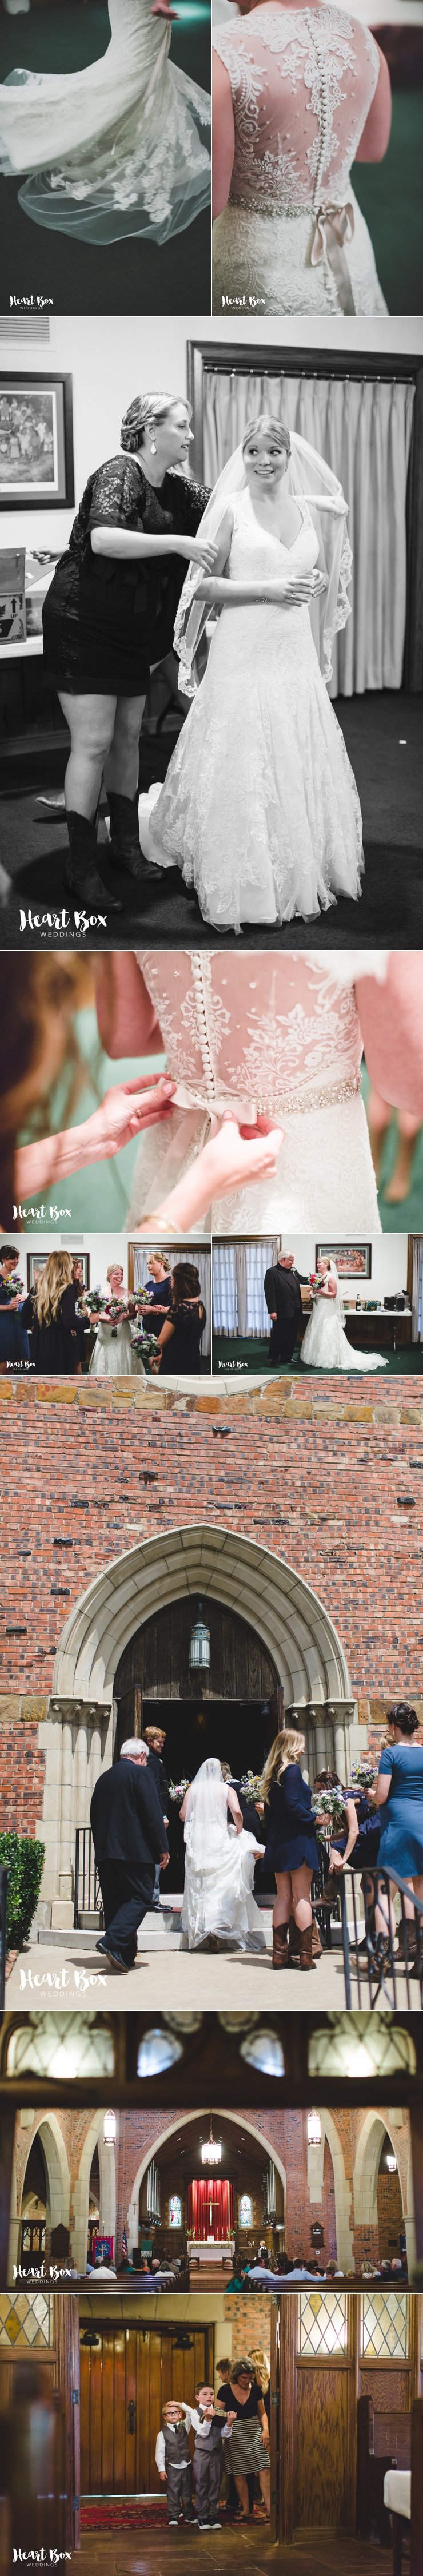 Louisa + Jon Wedding Blog Collages 3.jpg